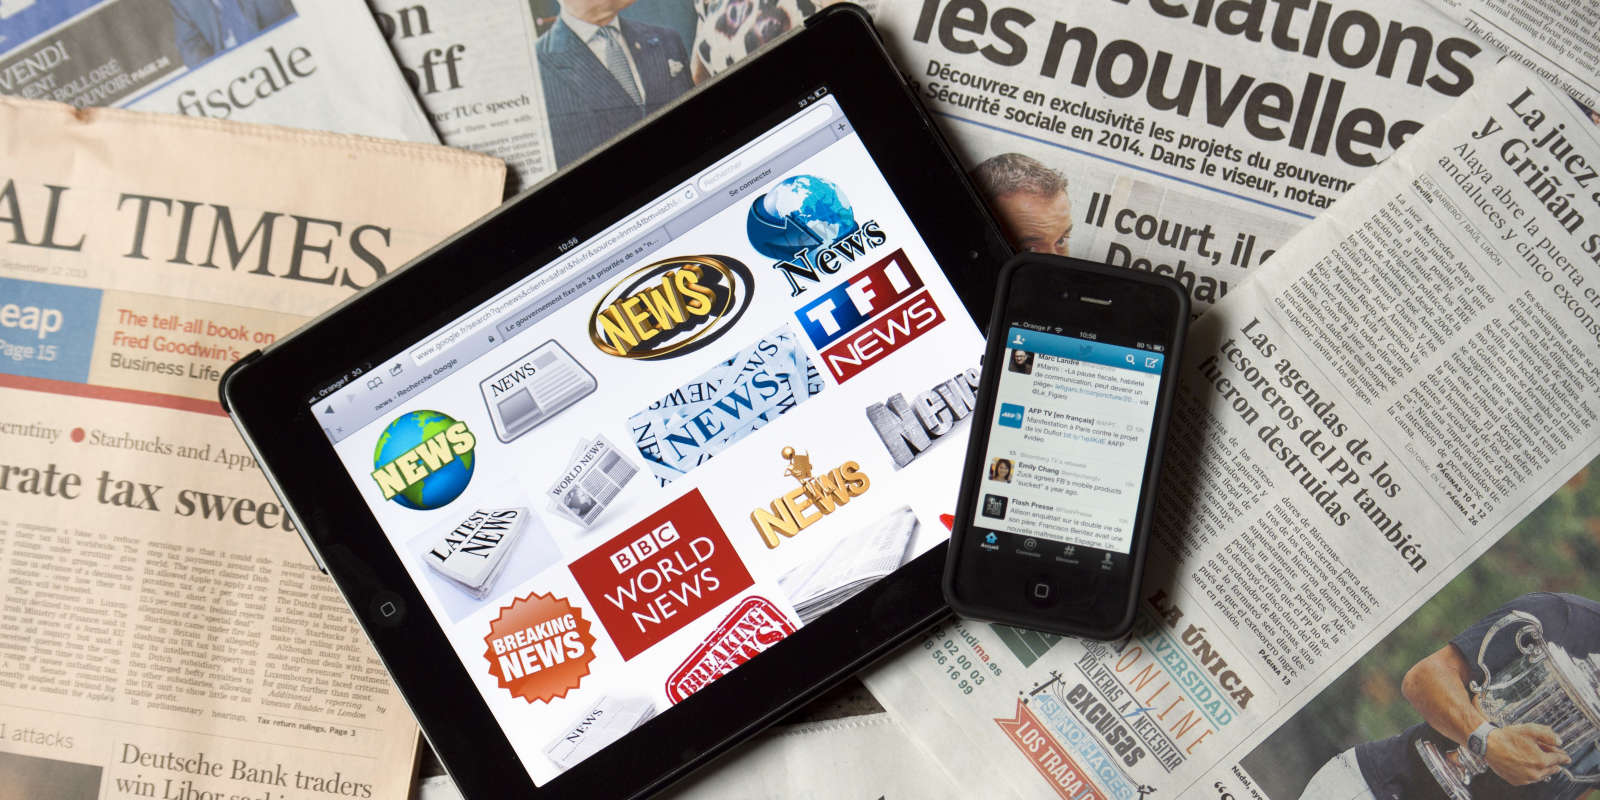 TO GO WITH AFP STORY BY TUPAC POINTU A picture taken on September 12, 2013 in Paris shows a tablet and a smartphone connected on news websites and world newspapers. AFP PHOTO / LIONEL BONAVENTURE / AFP PHOTO / LIONEL BONAVENTURE